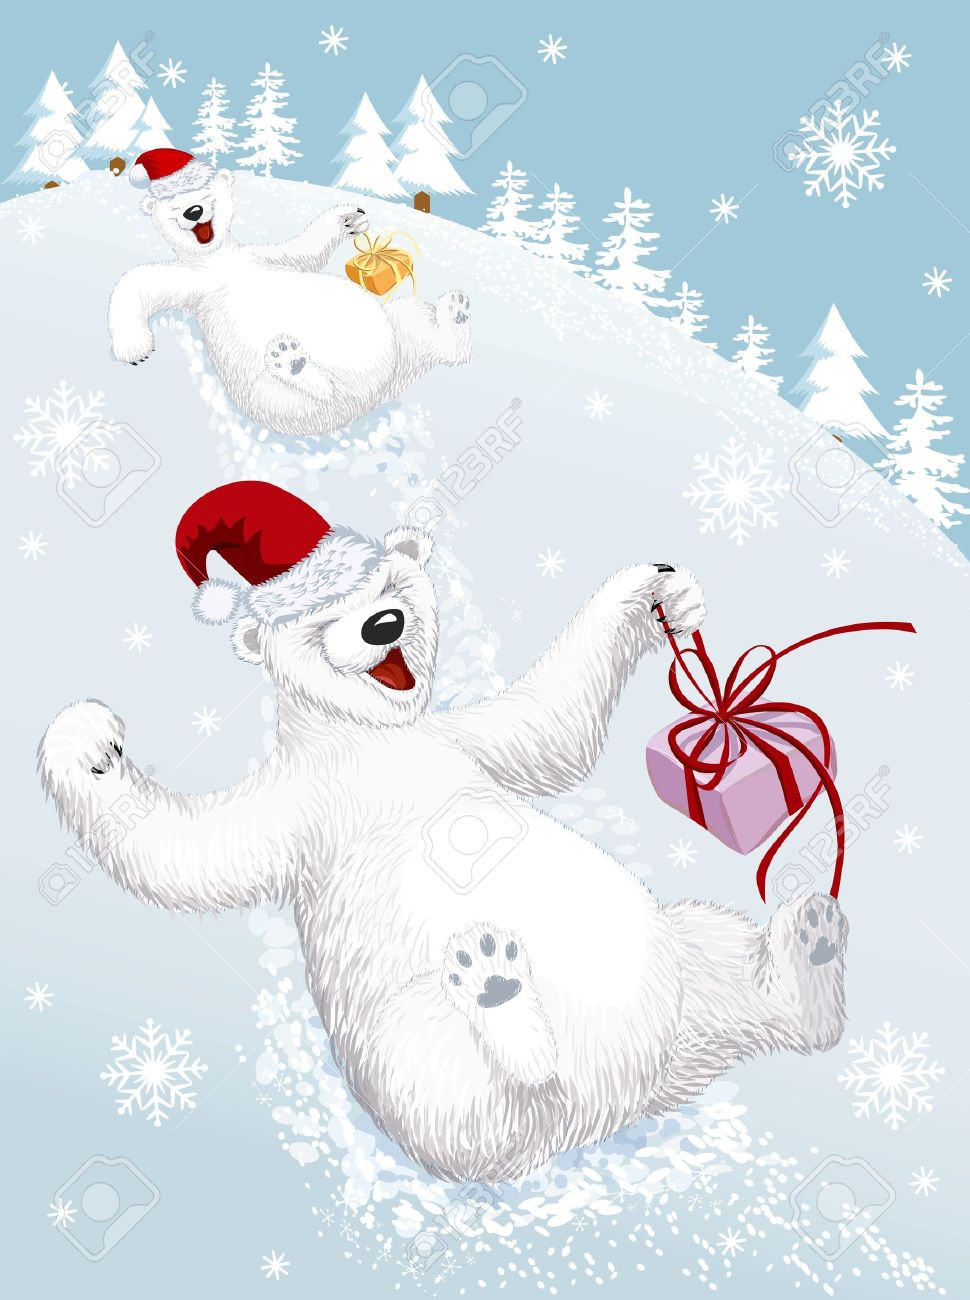 Two Funny Polar Bears Sliding Down From A Snowy Hill Royalty Free Cliparts Vectors And Stock Illustration Image 21426206